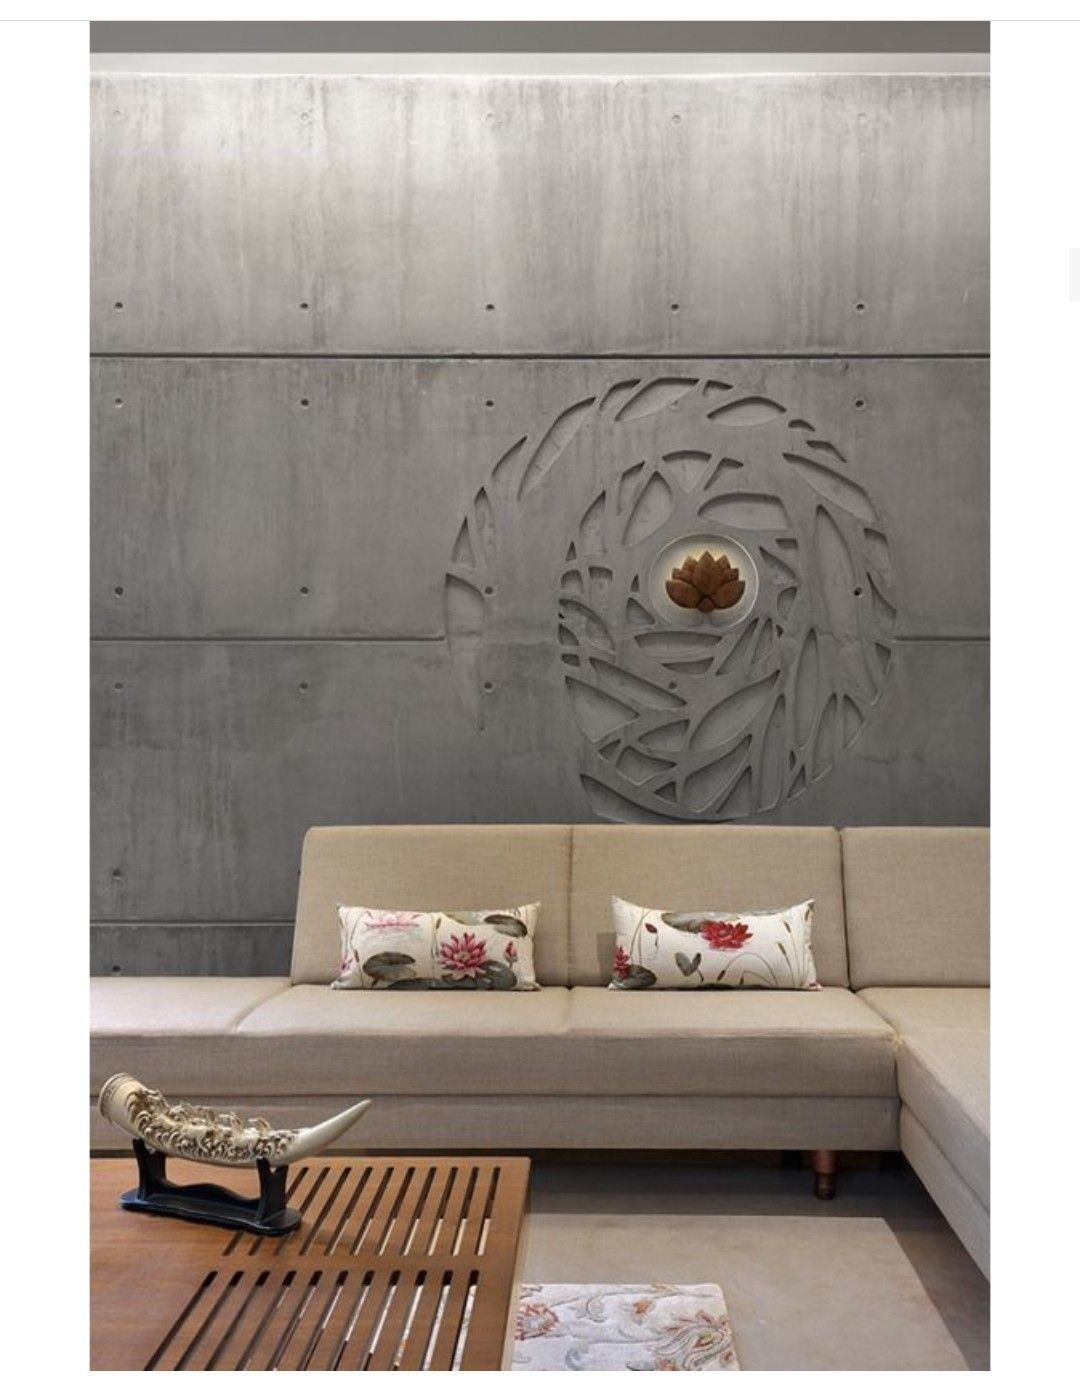 Pin by Rakhi Ravindran on Home in 2019 | Wall design